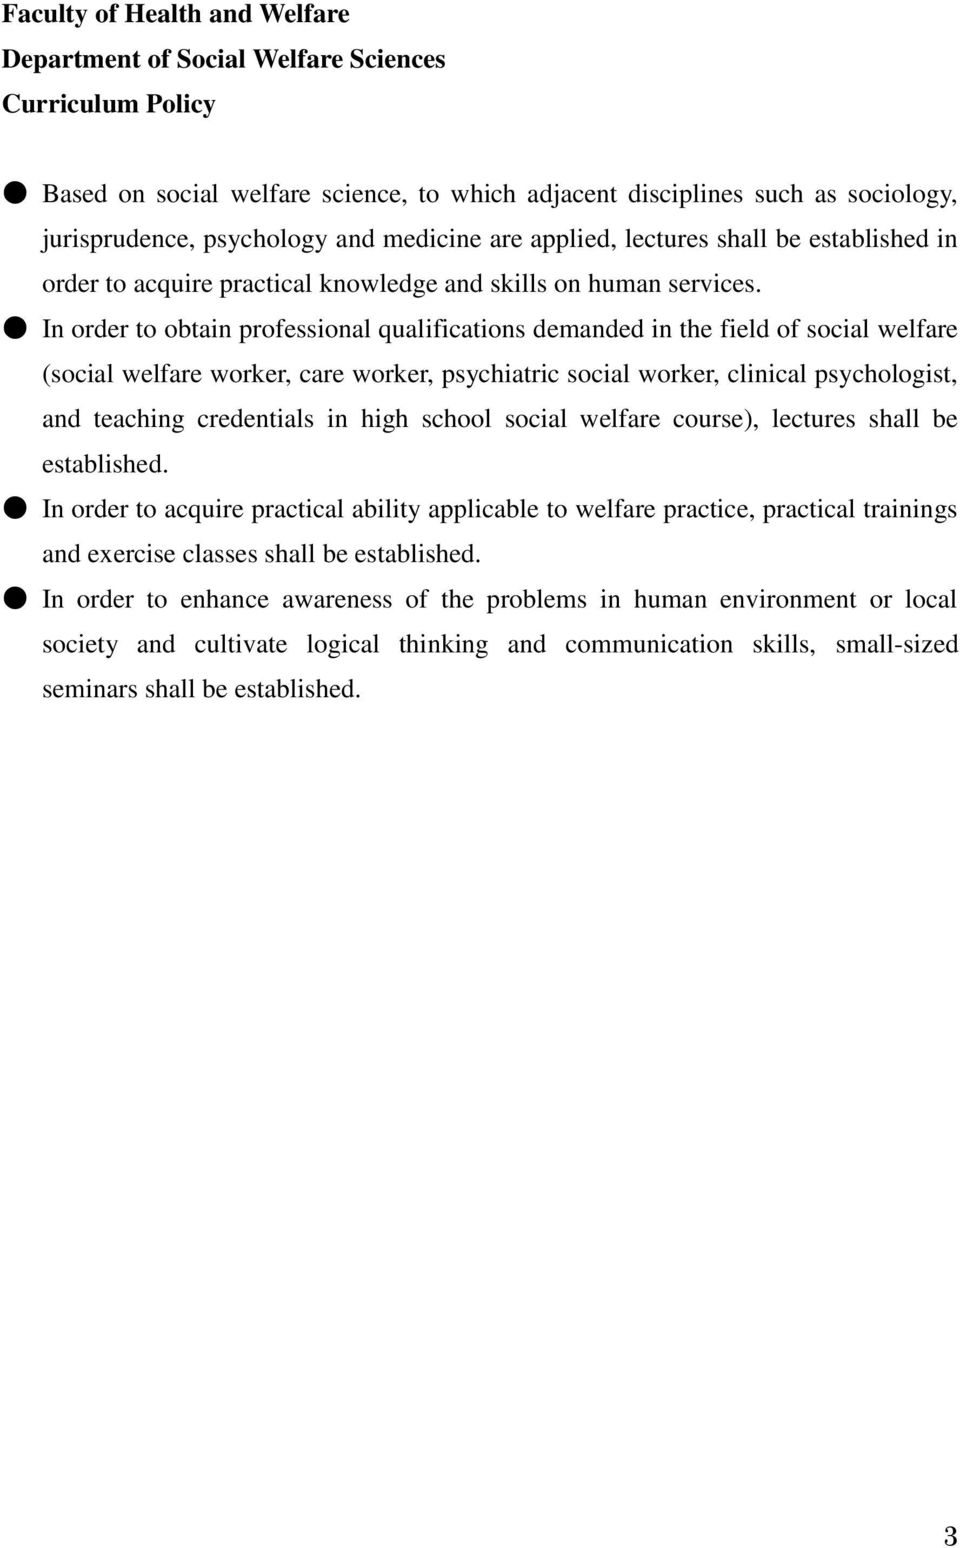 In order to obtain professional qualifications demanded in the field of social welfare (social welfare worker, care worker, psychiatric social worker, clinical psychologist, and teaching credentials